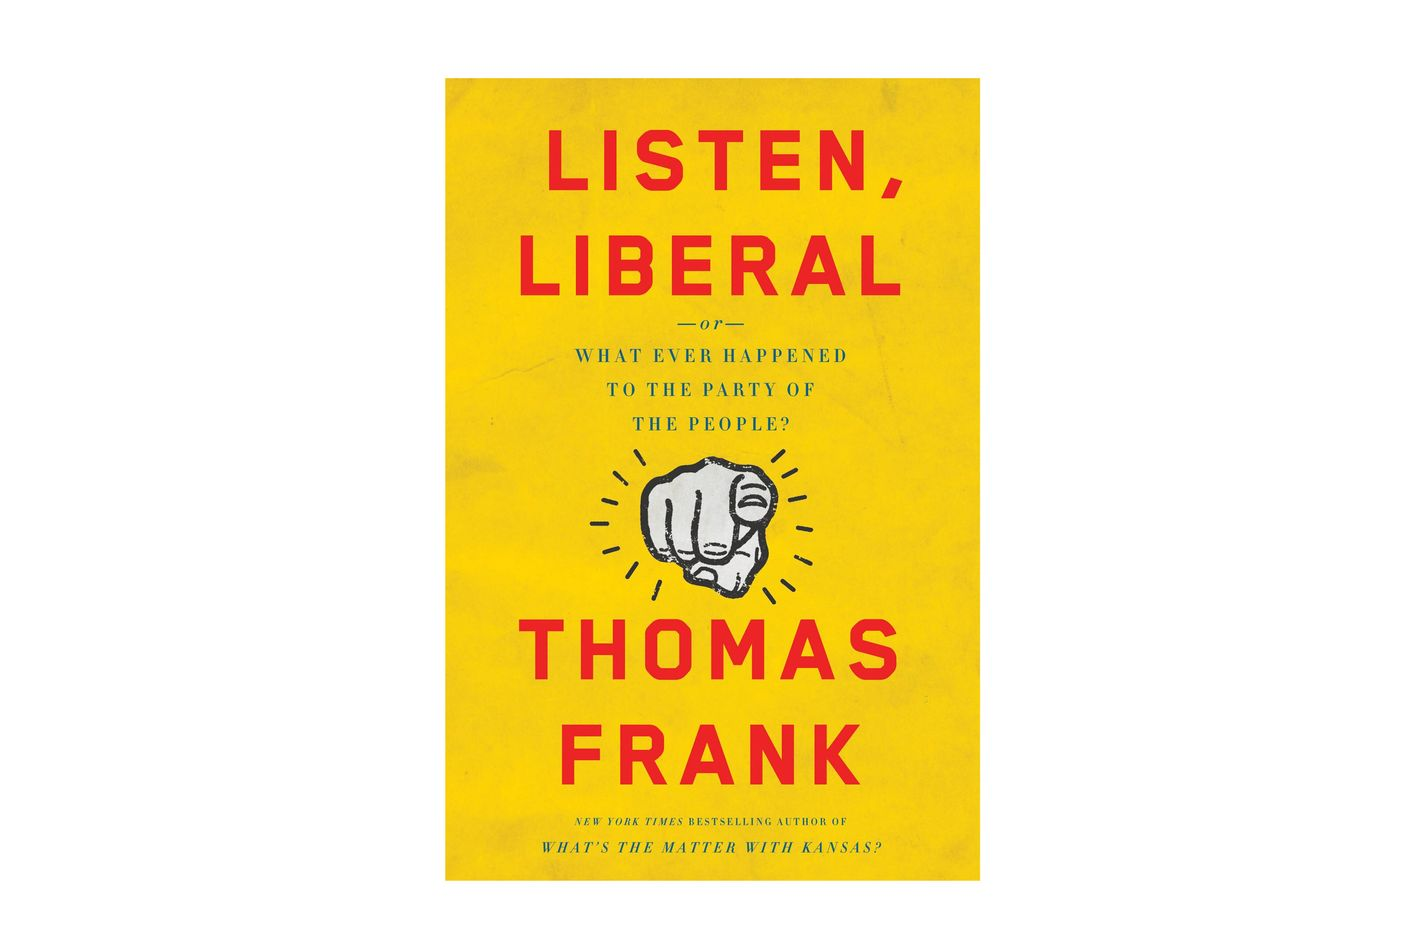 Listen, Liberal: Or, What Ever Happened to the Party of the People, by Thomas Frank